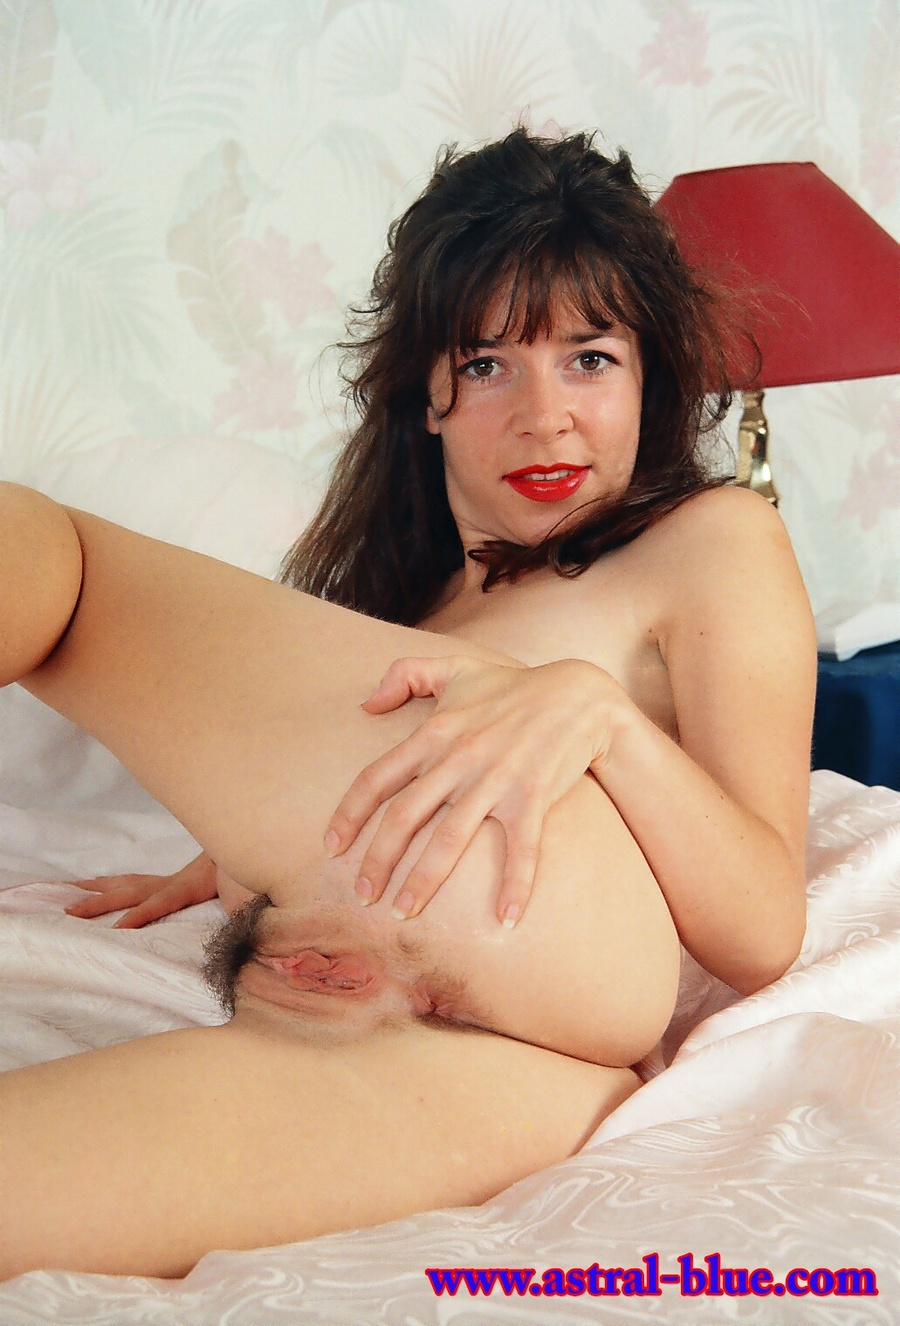 Diana Wynn, Big Tits Uk Page 3 Girl, Nude M - Xxx Dessert - Picture 8-8204